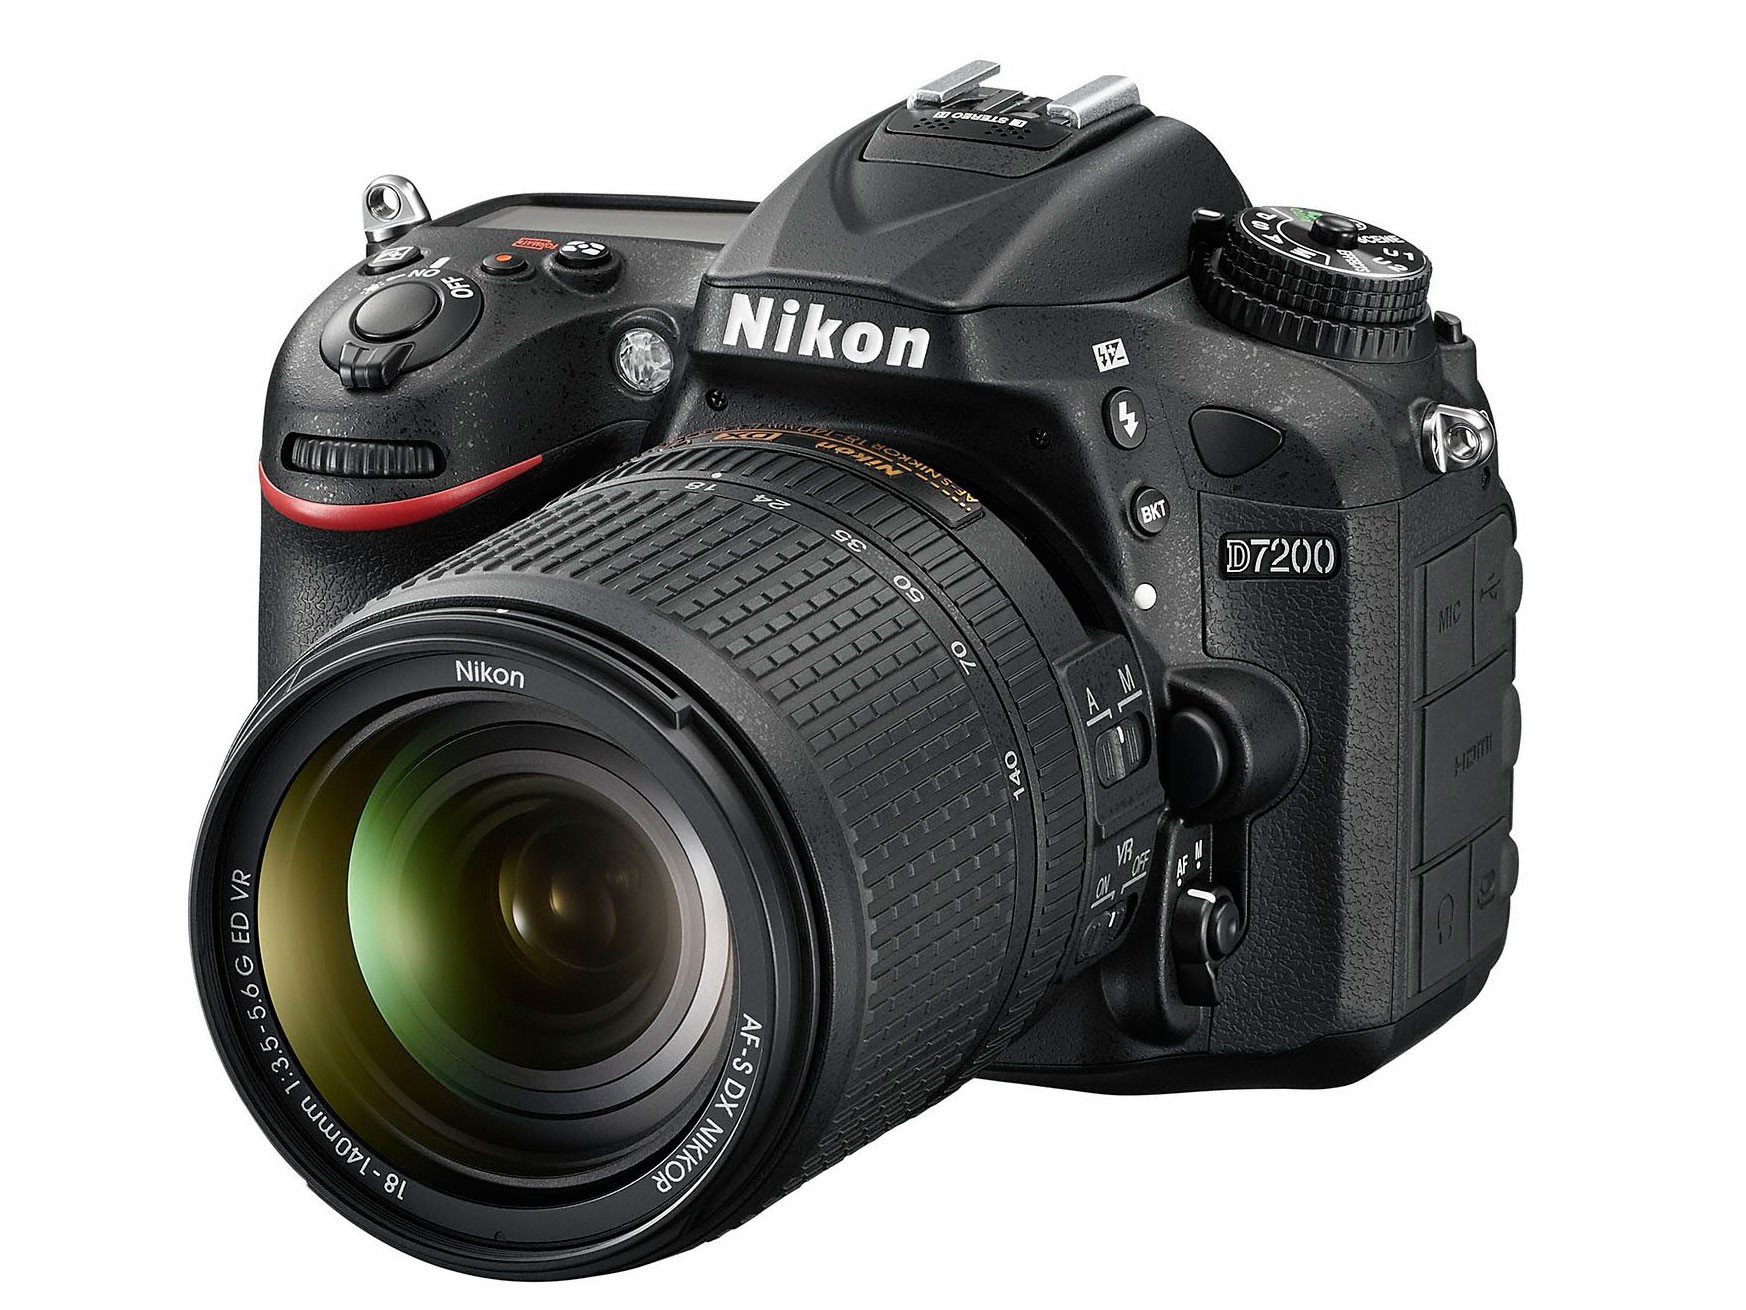 Camera Best Deals On Dslr Cameras In Usa where to buy cheapest nikon d7200 deals online camera news at d7200